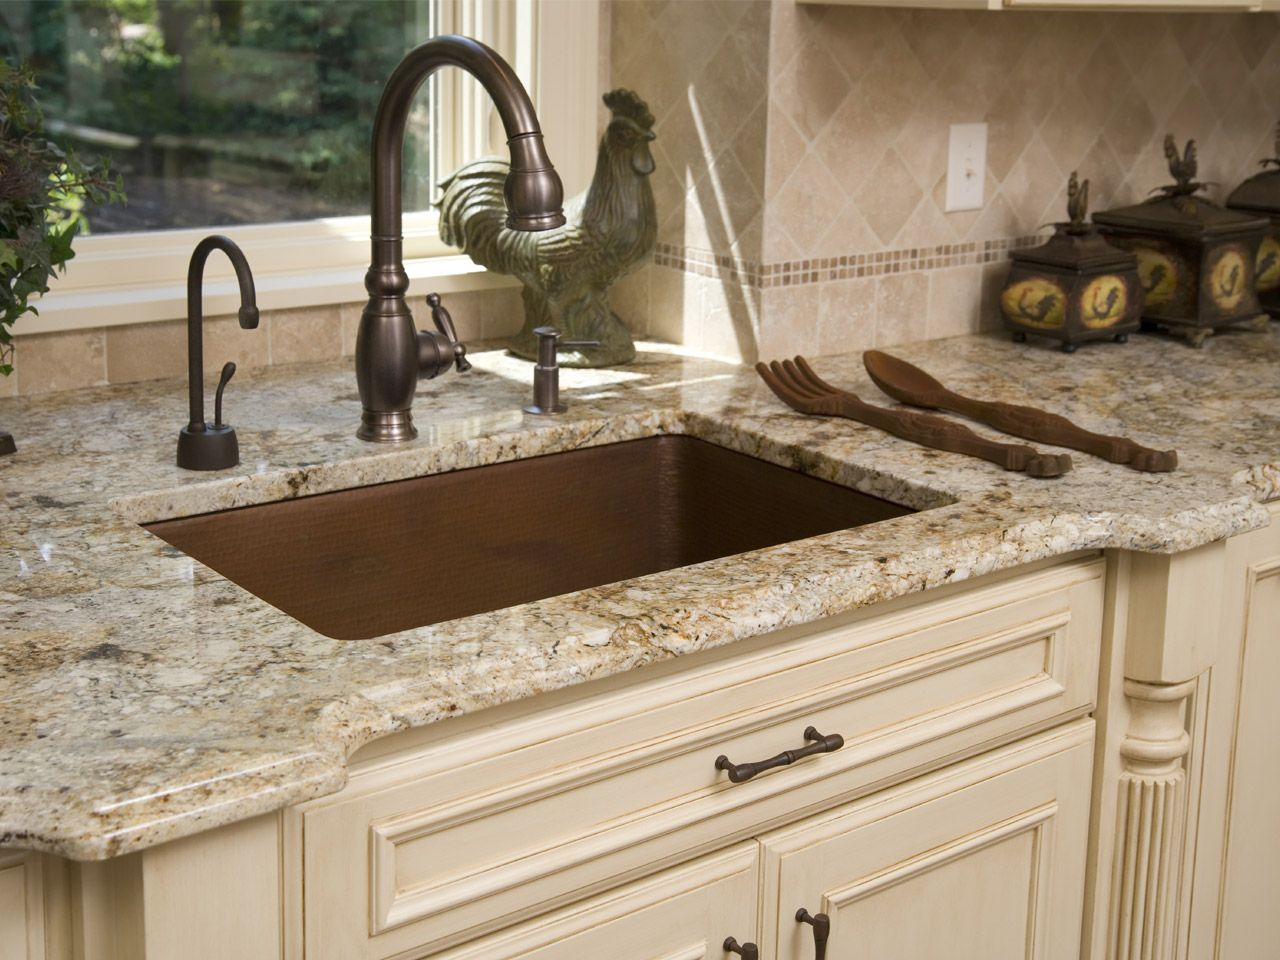 Off White Kitchen Cabinet Ideas Granite Counters With Cream Colored Cabinets  Your Local Kitchen